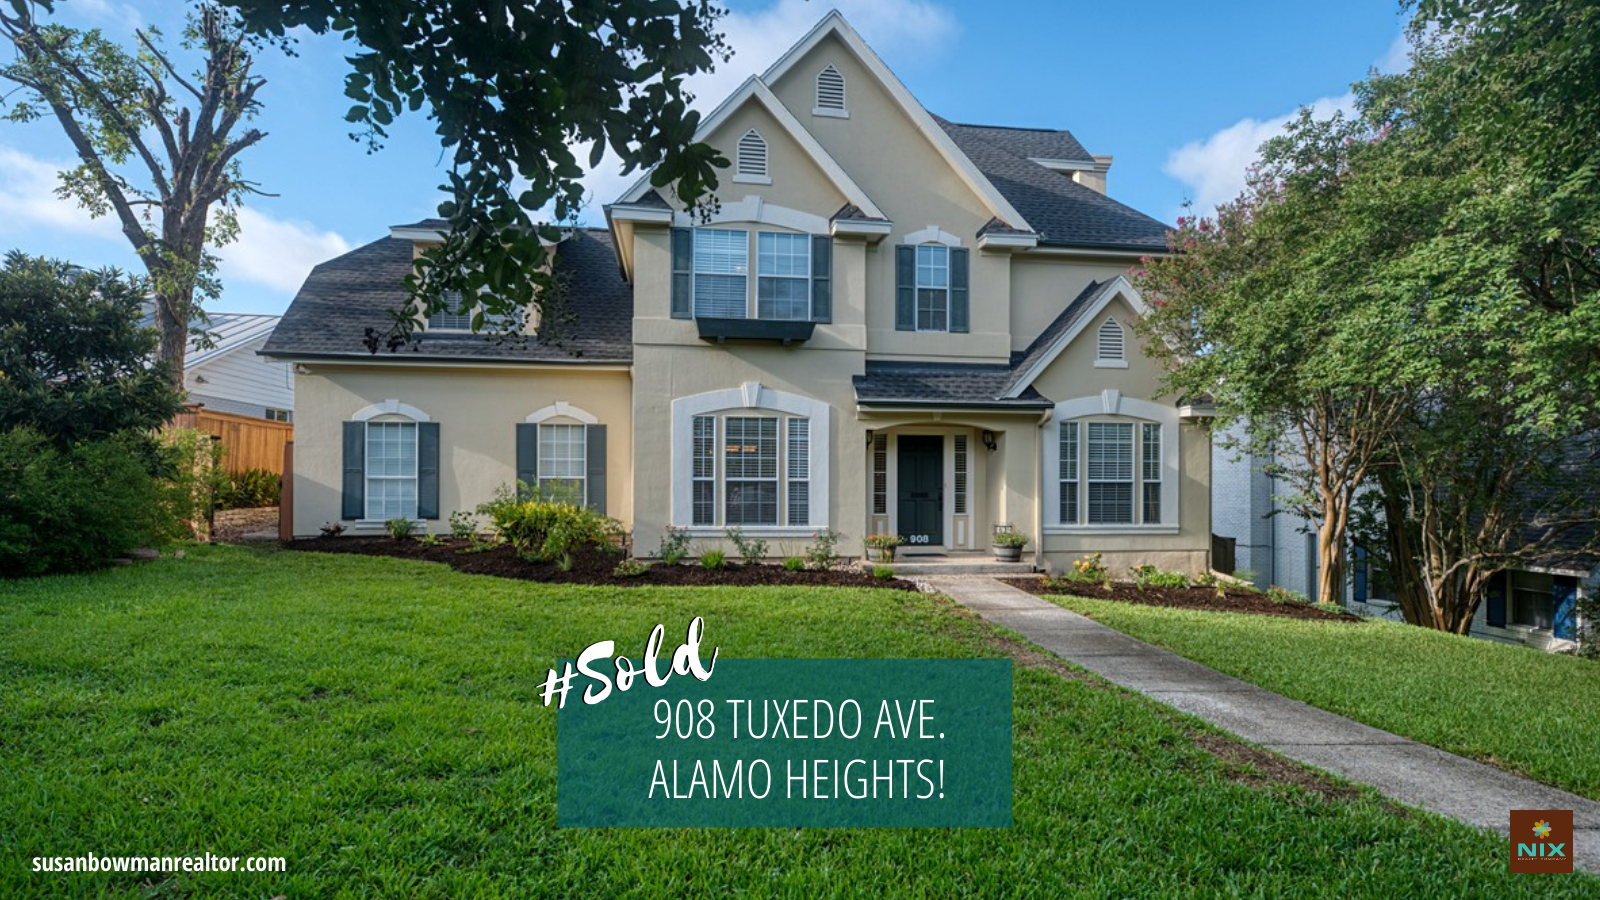 Immediate Offers Over Asking: Most Competitive Market We've Seen!